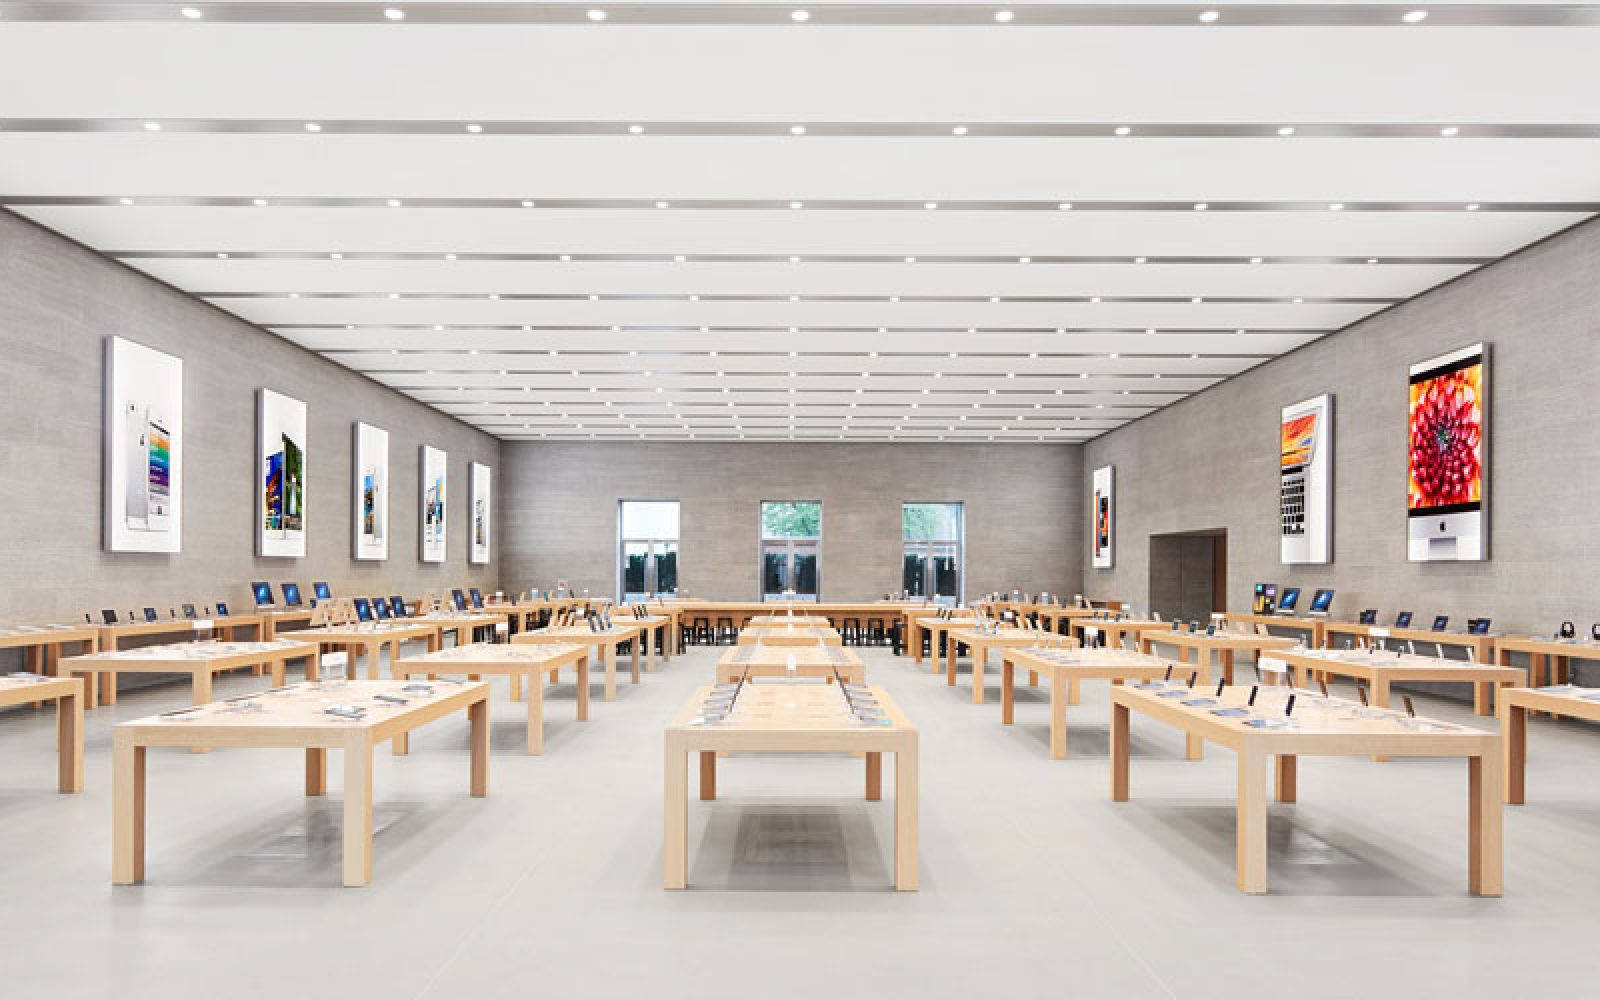 Apple under fire for paying $0 tax on $3B worth of sales in